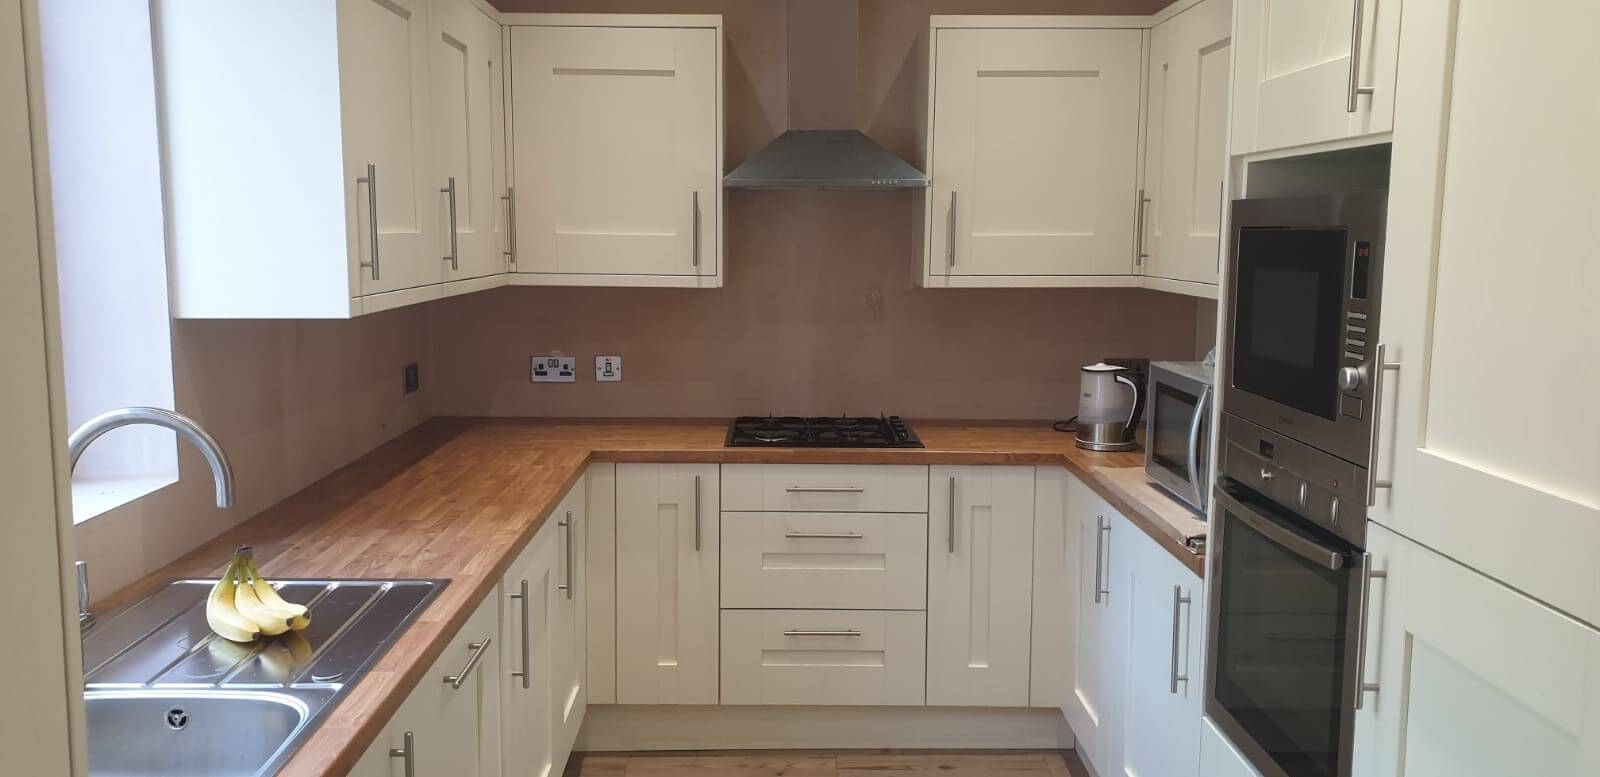 This image shows a kitchen renovation installed by Celsius Home Improvements in Bootle, Liverpool